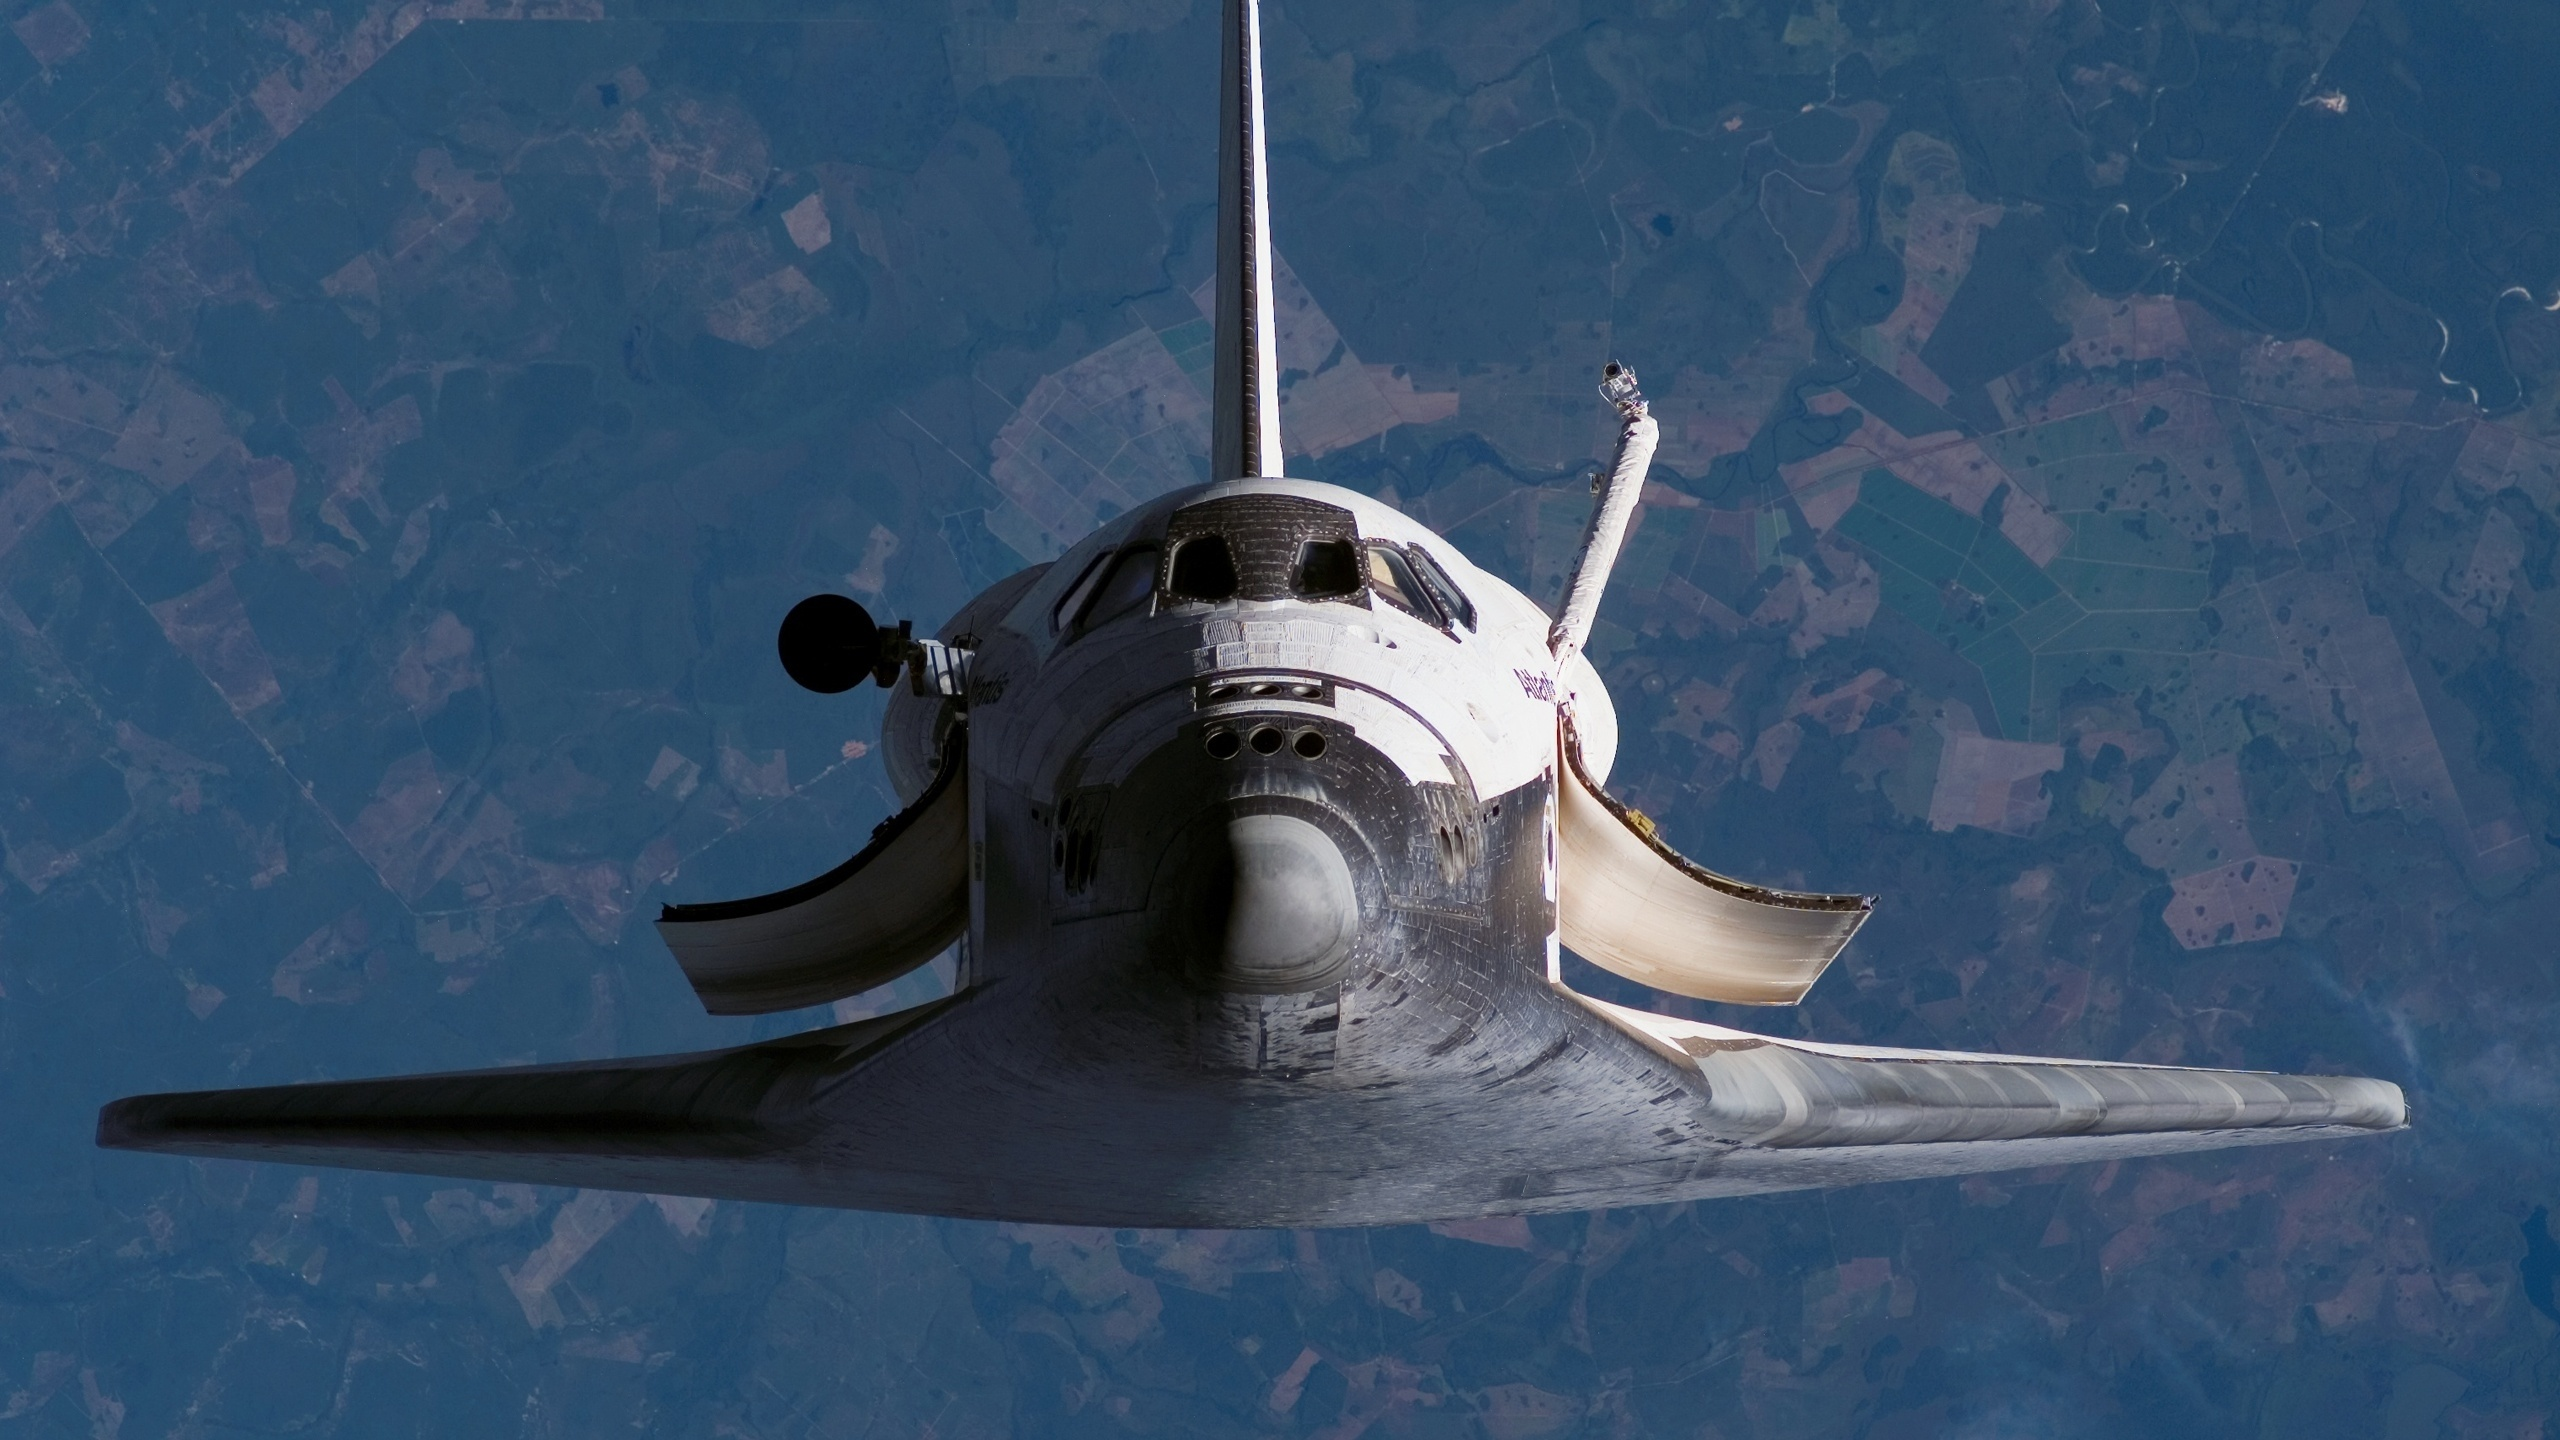 hd space shuttle in space-#2